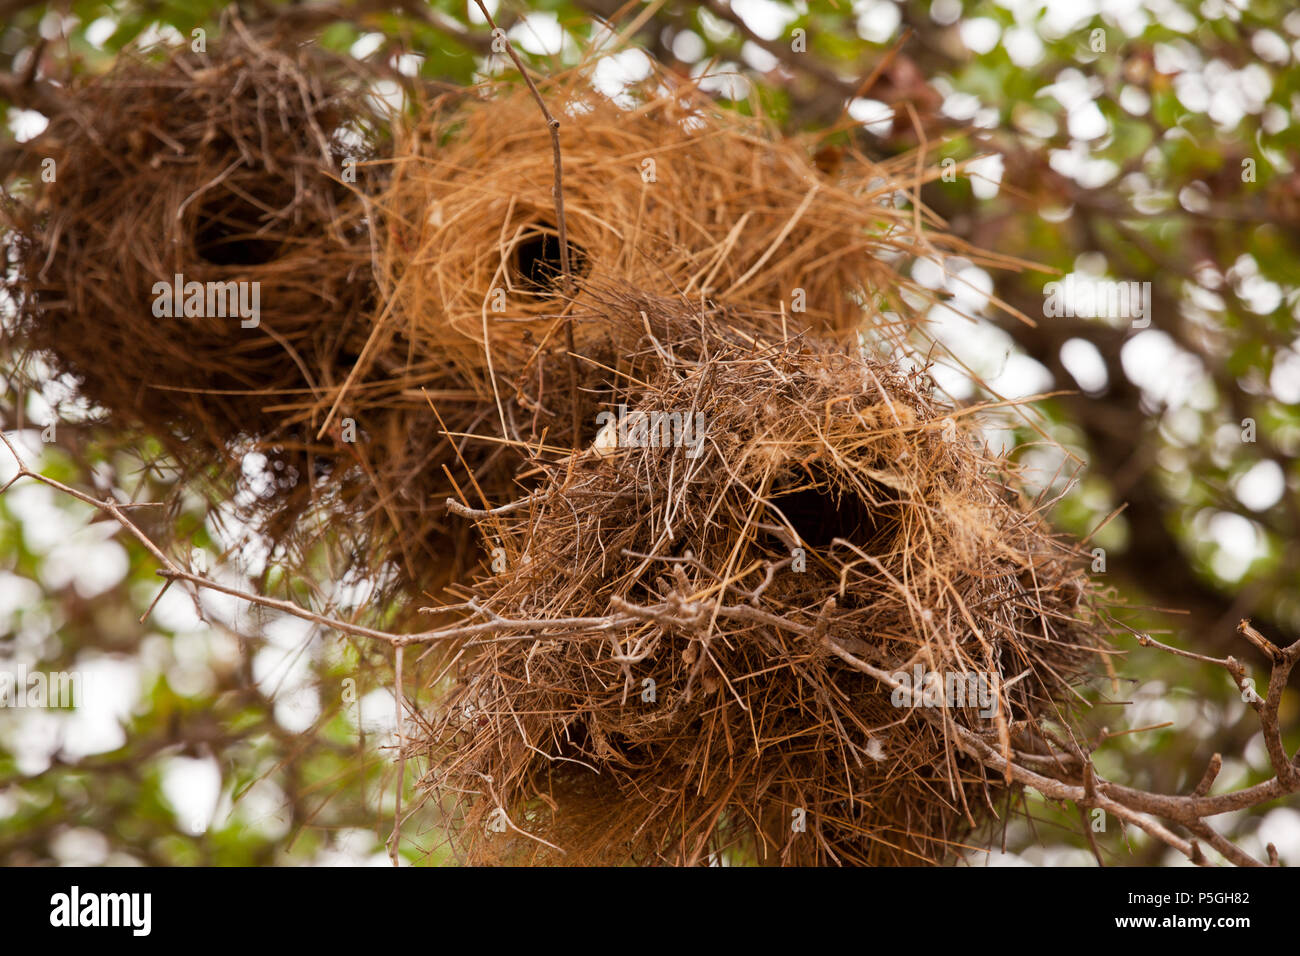 White browed sparrow weaver nests, Selous Game Reserve, Tanzania - Stock Image